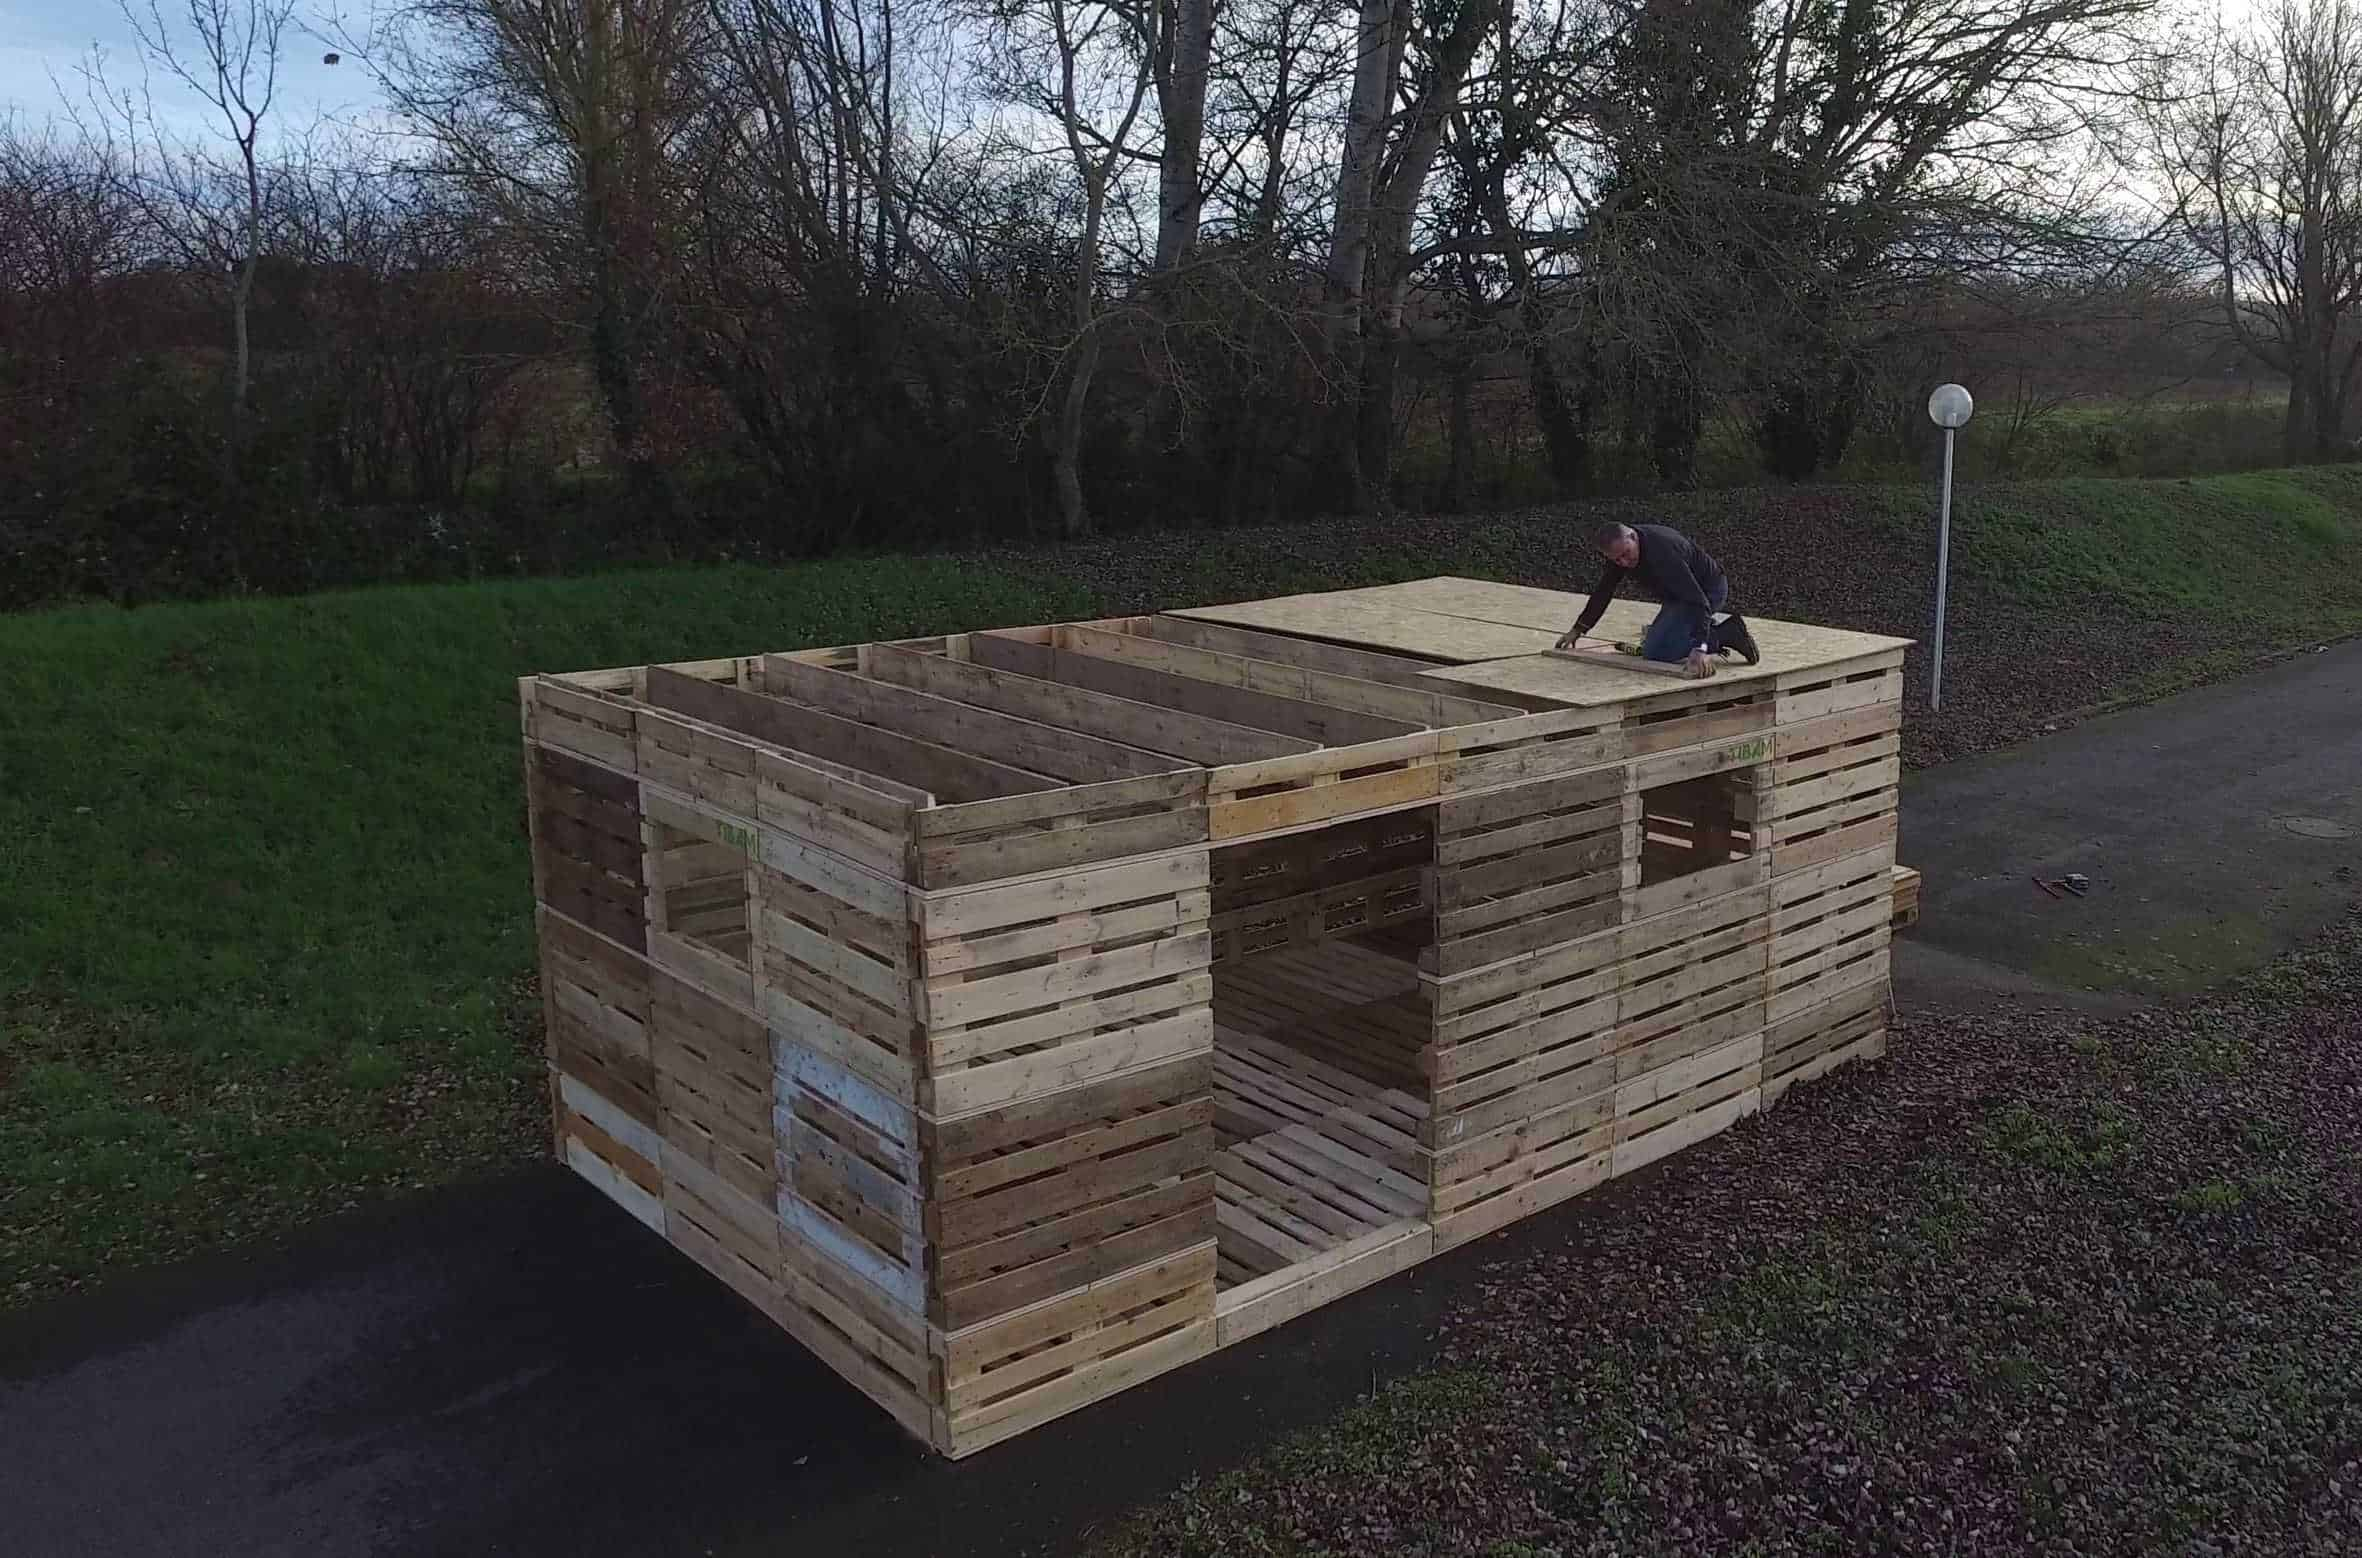 What If You Could Build a Shelter from Pallets in One Day  : 1001palletscom what if you could build a shelter from pallets in one day from www.1001pallets.com size 2362 x 1558 jpeg 370kB